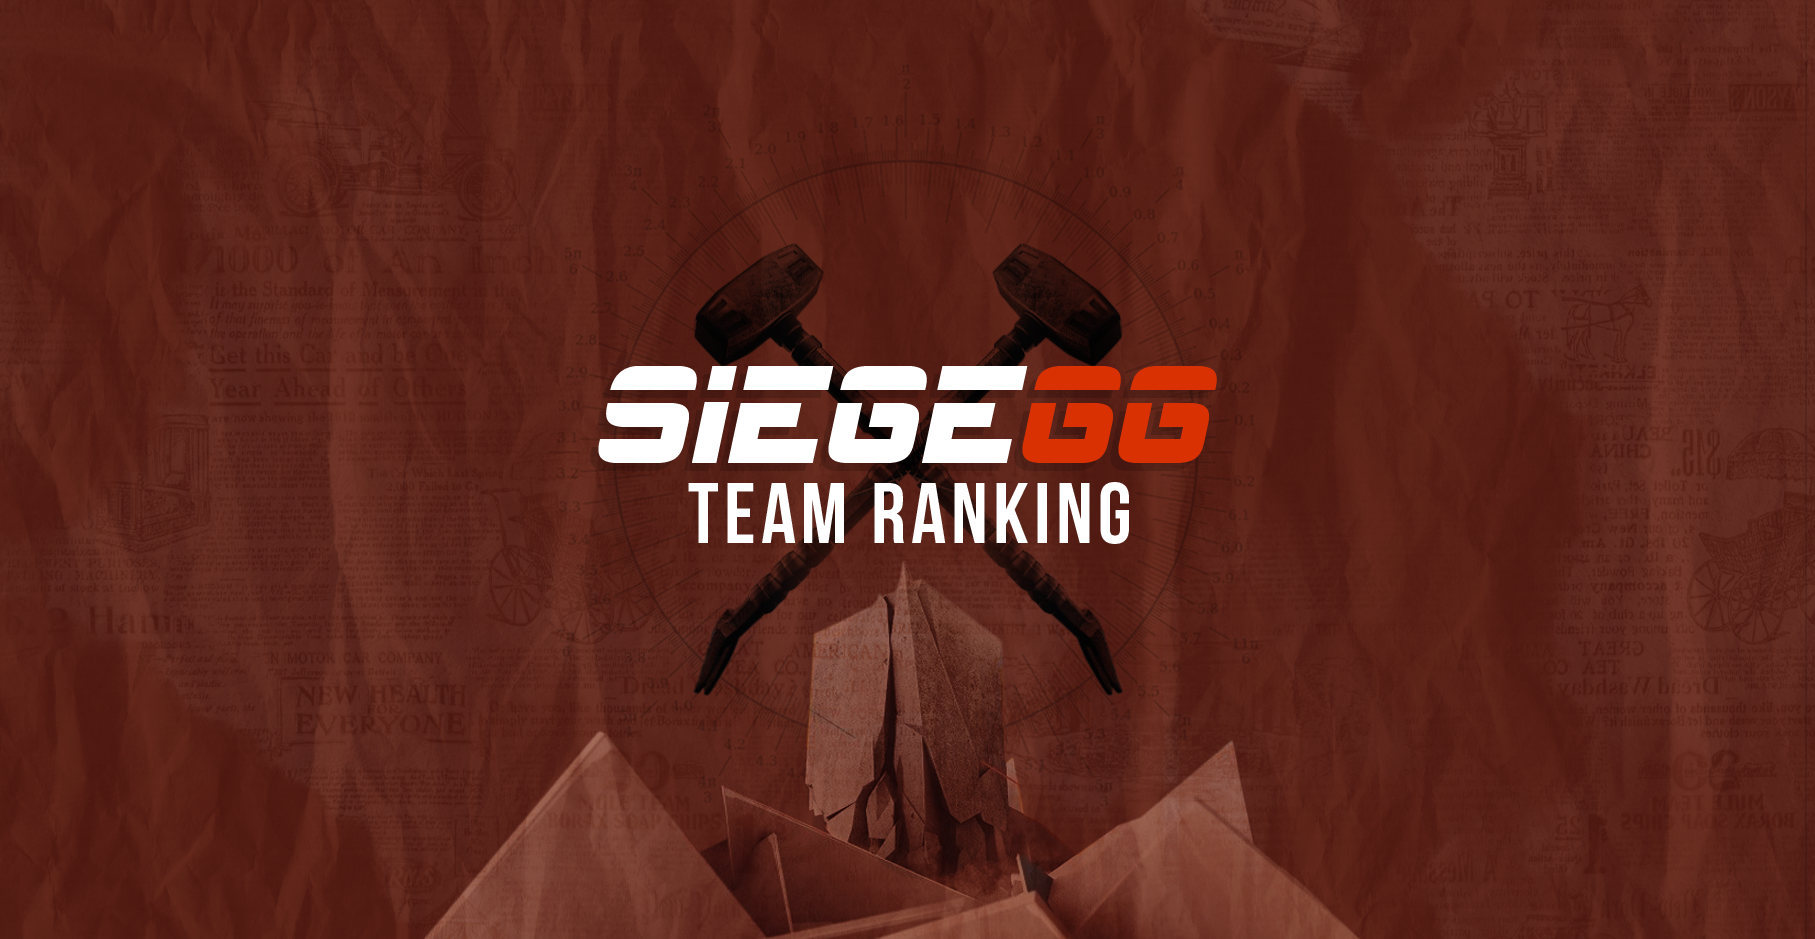 SiegeGG Team Ranking: Launch and Methodology